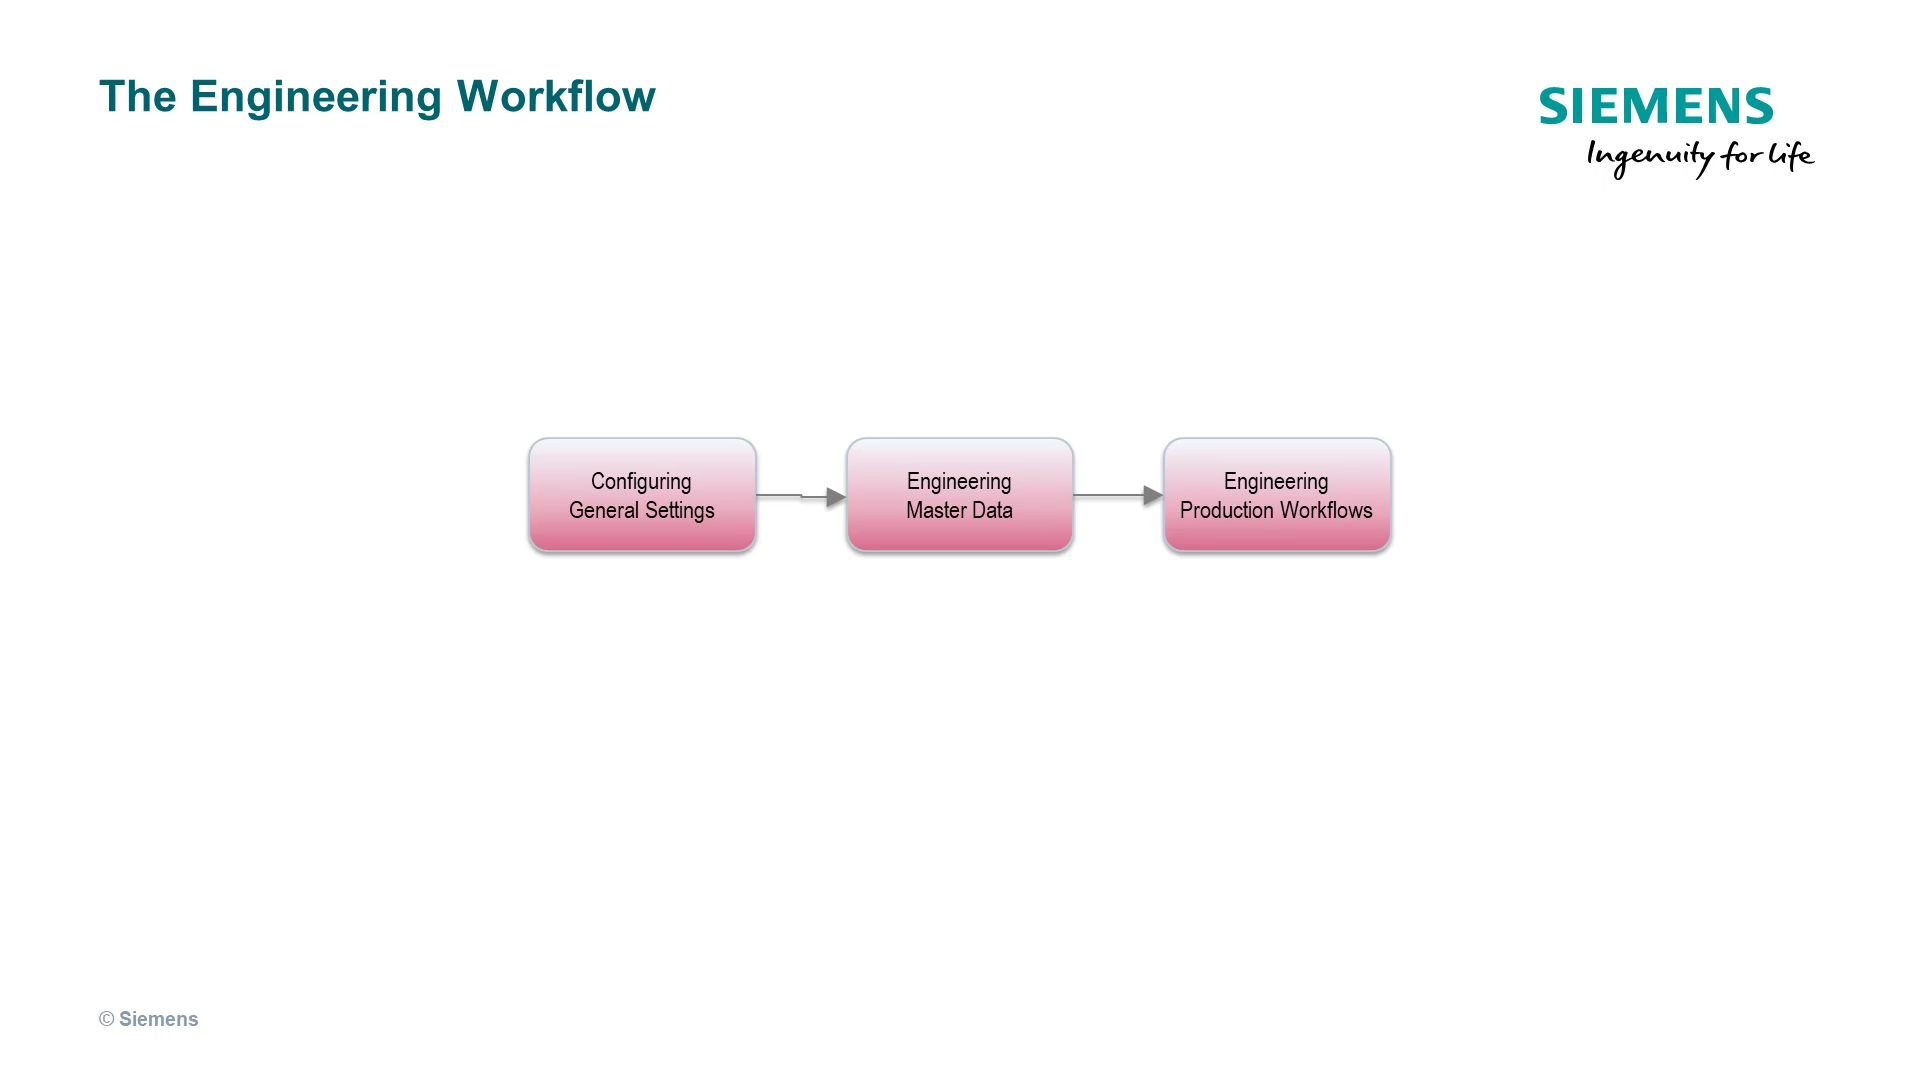 The Business Context and the Engineering Workflow cover image